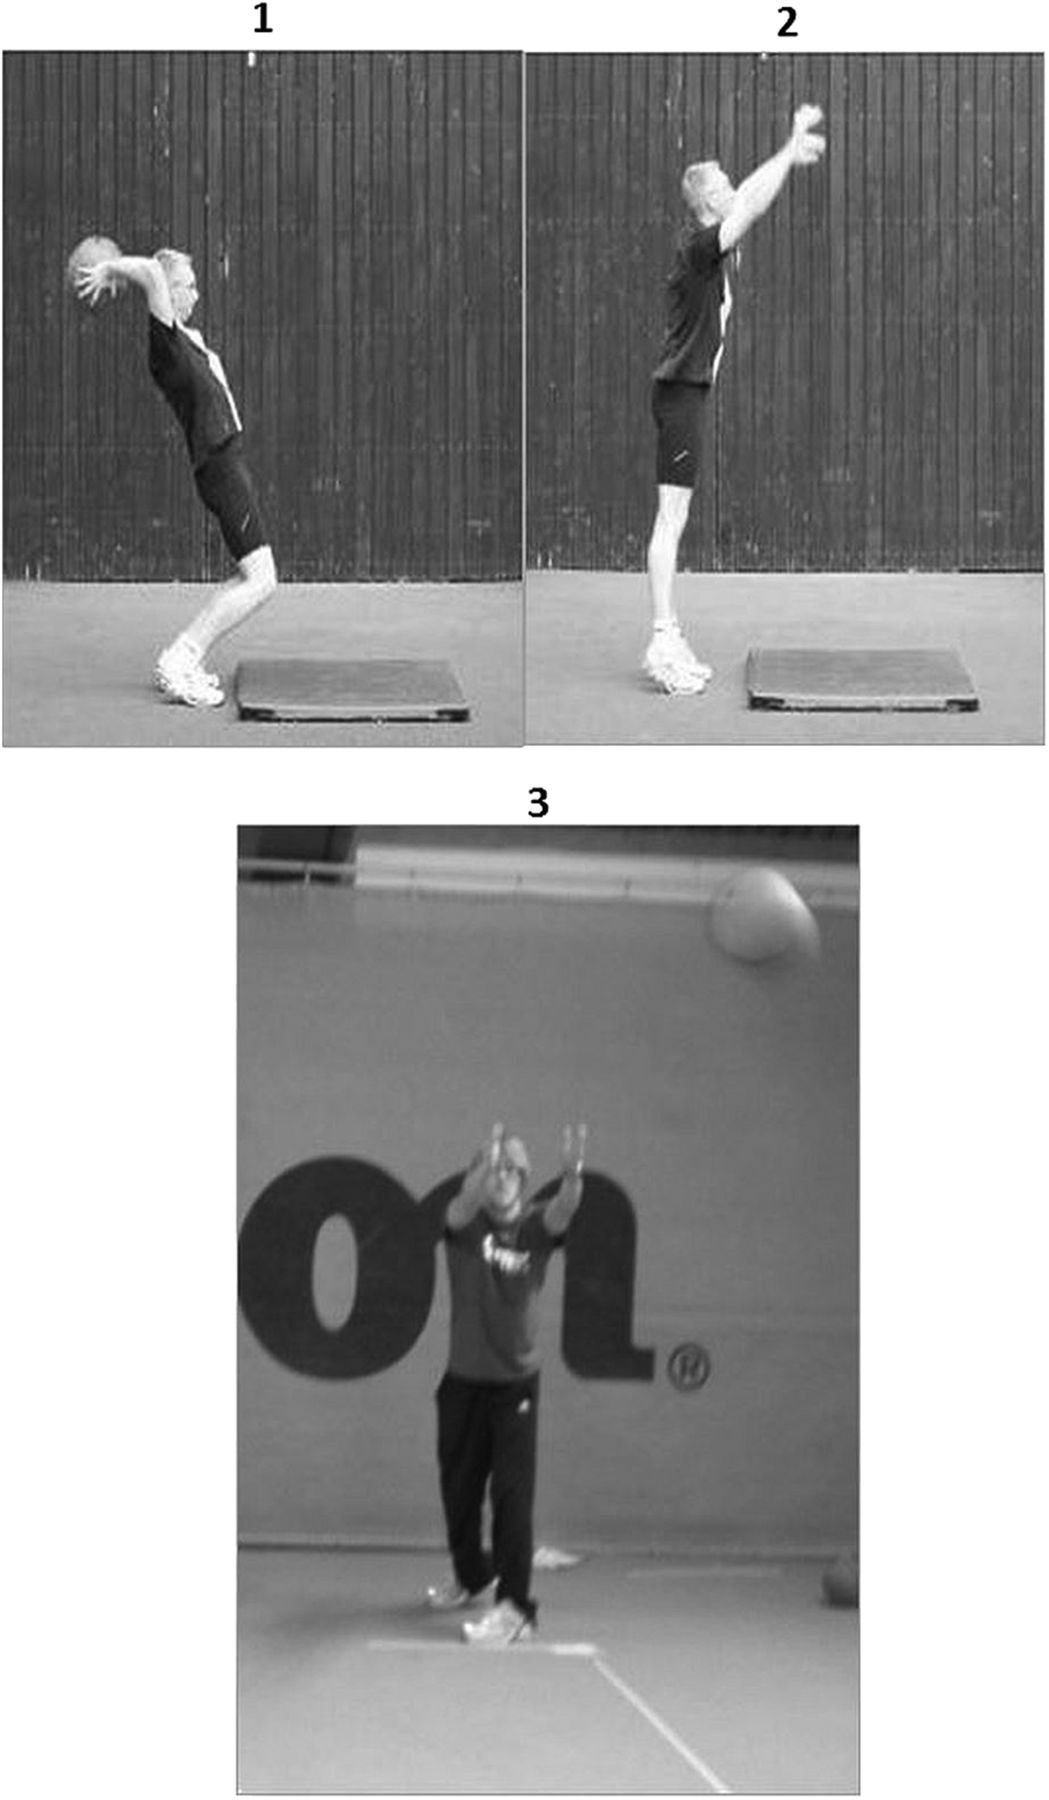 Fitness testing of tennis players: How valuable is it